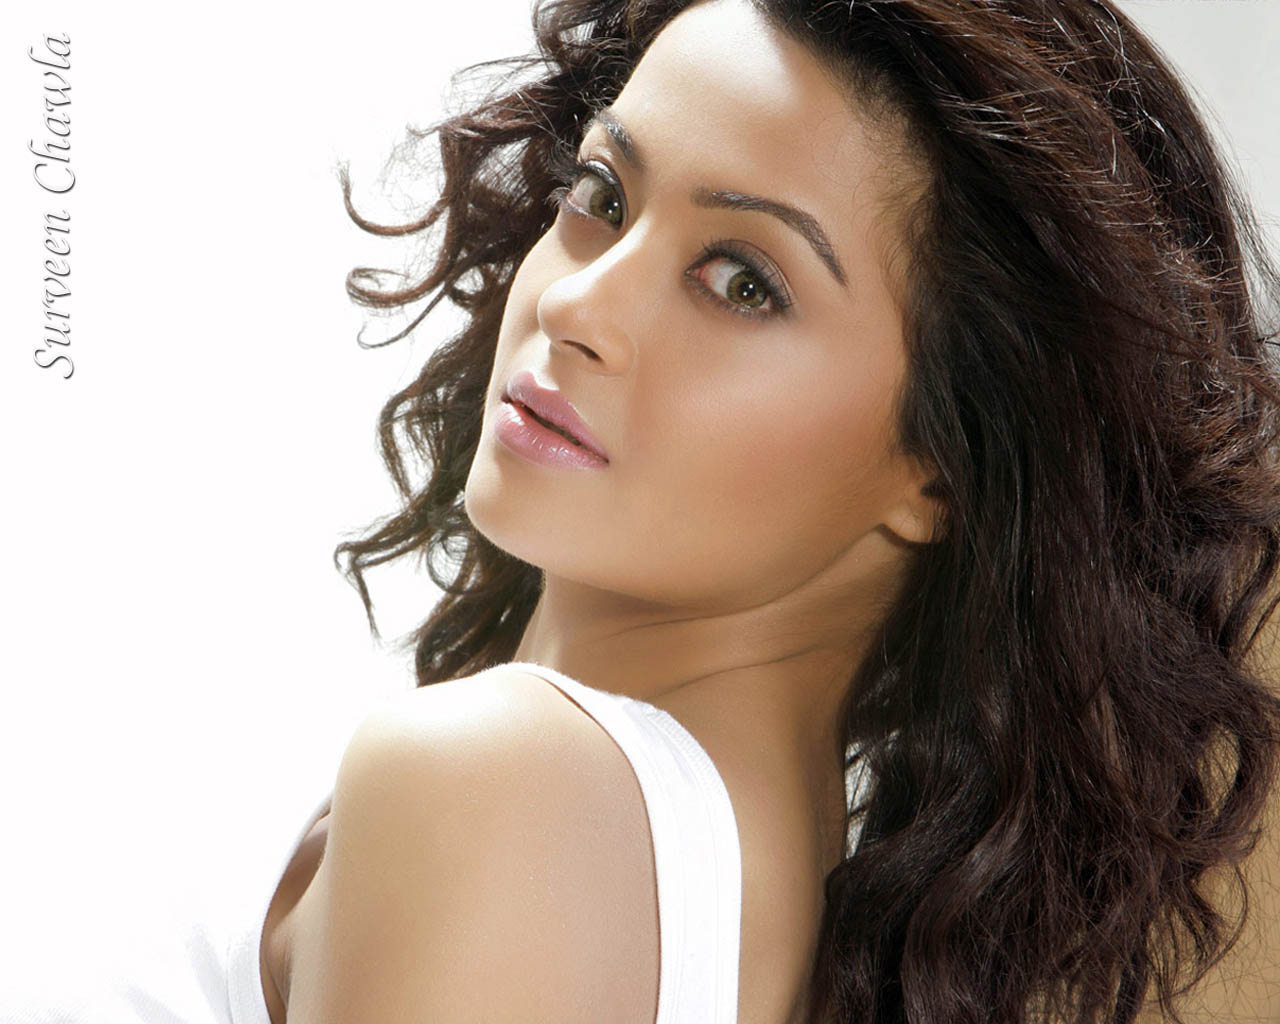 Heroine Of Hate Story 4: Bollywood Actress World (Original): Actress Model Surveen